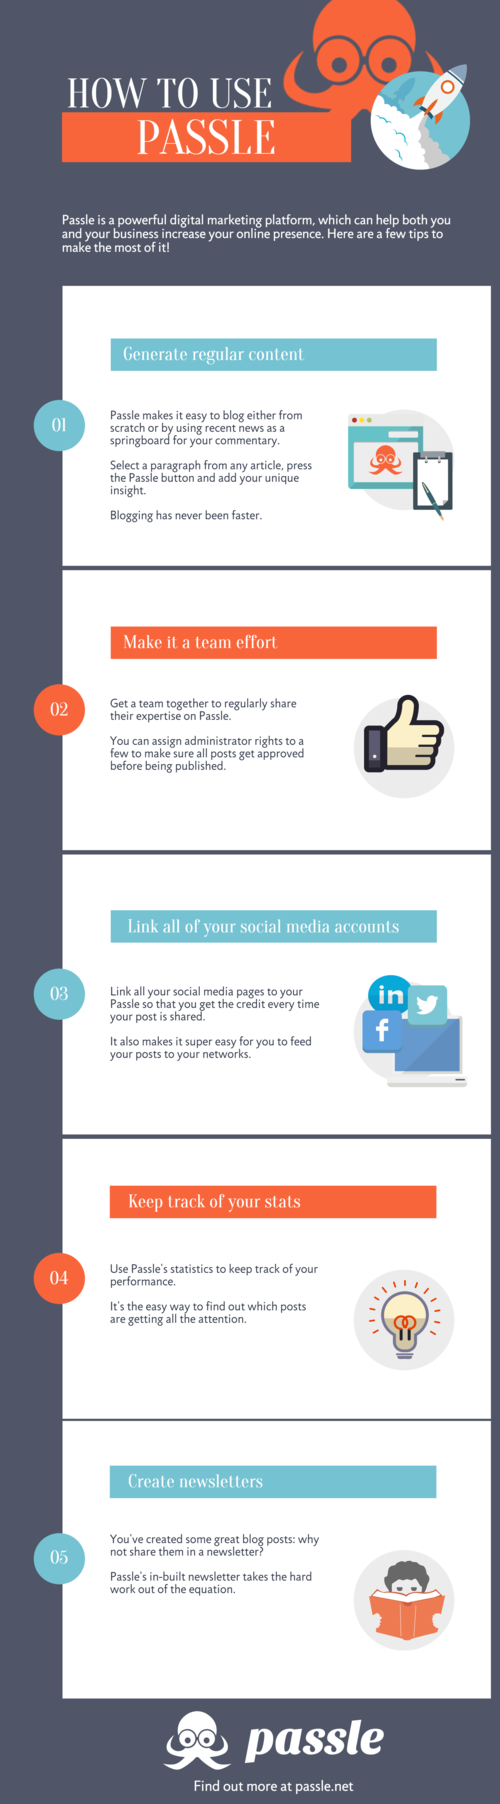 How to use Passle for your business [Infographic]